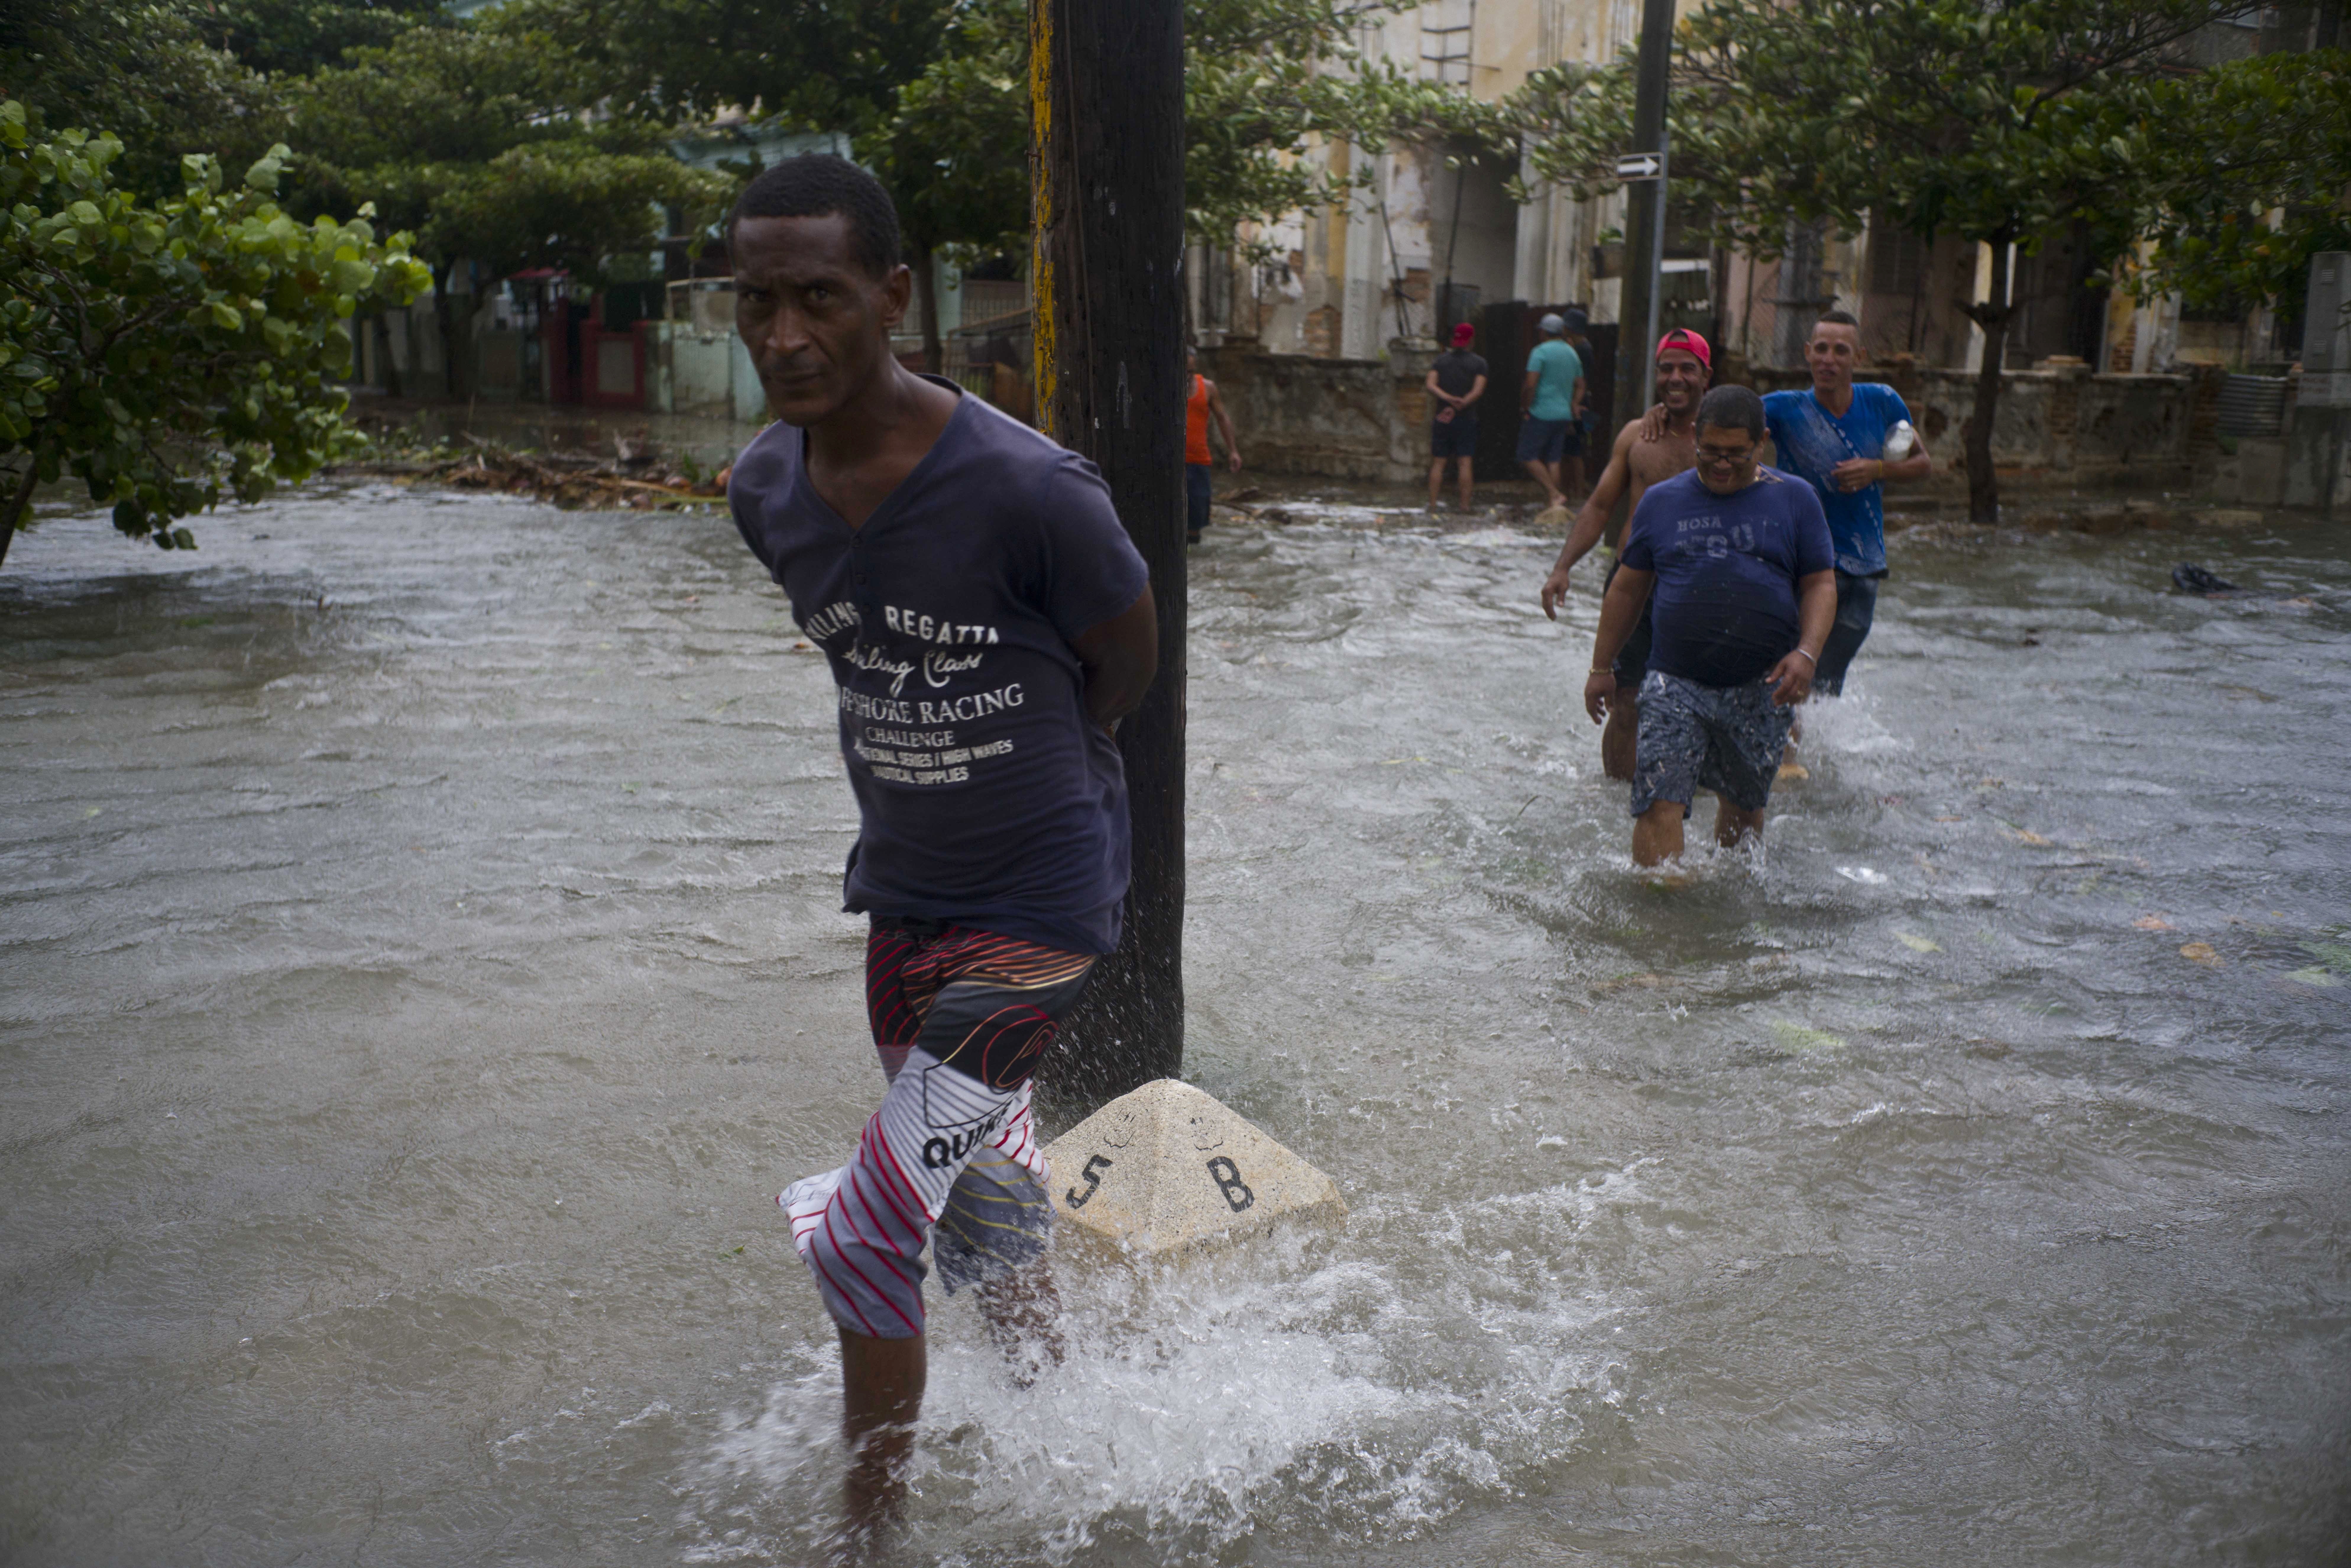 "<div class=""meta image-caption""><div class=""origin-logo origin-image none""><span>none</span></div><span class=""caption-text"">Men wade through a flooded street, caused by the passing of Hurricane Irma in Havana, Cuba, early evening Saturday, Sept. 9, 2017. (Ramon Espinosa/AP Photo)</span></div>"